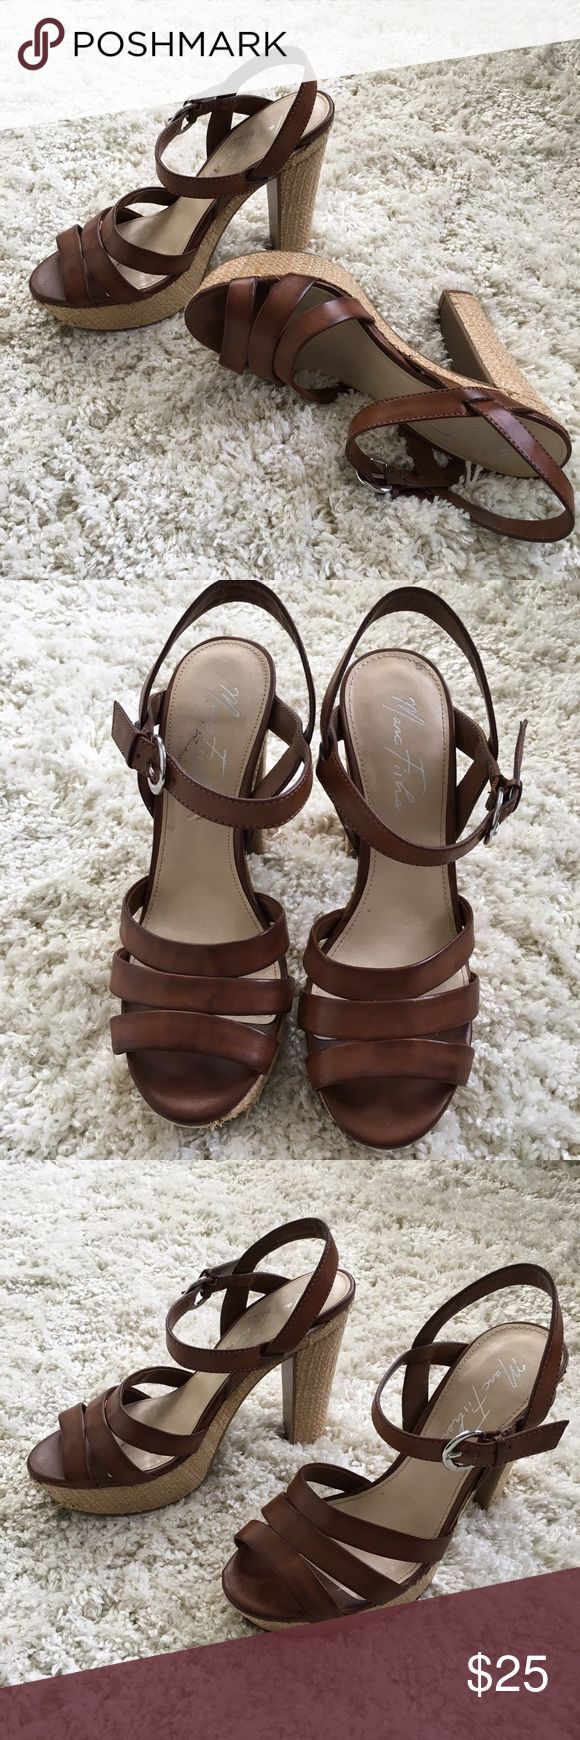 Brown Strappy Heels Brown strappy heels with a tan wicker base. Hardly worn, excellent condition except scratches on the inside sole of one heel (4th pic). Size: 7 Shoes Heels